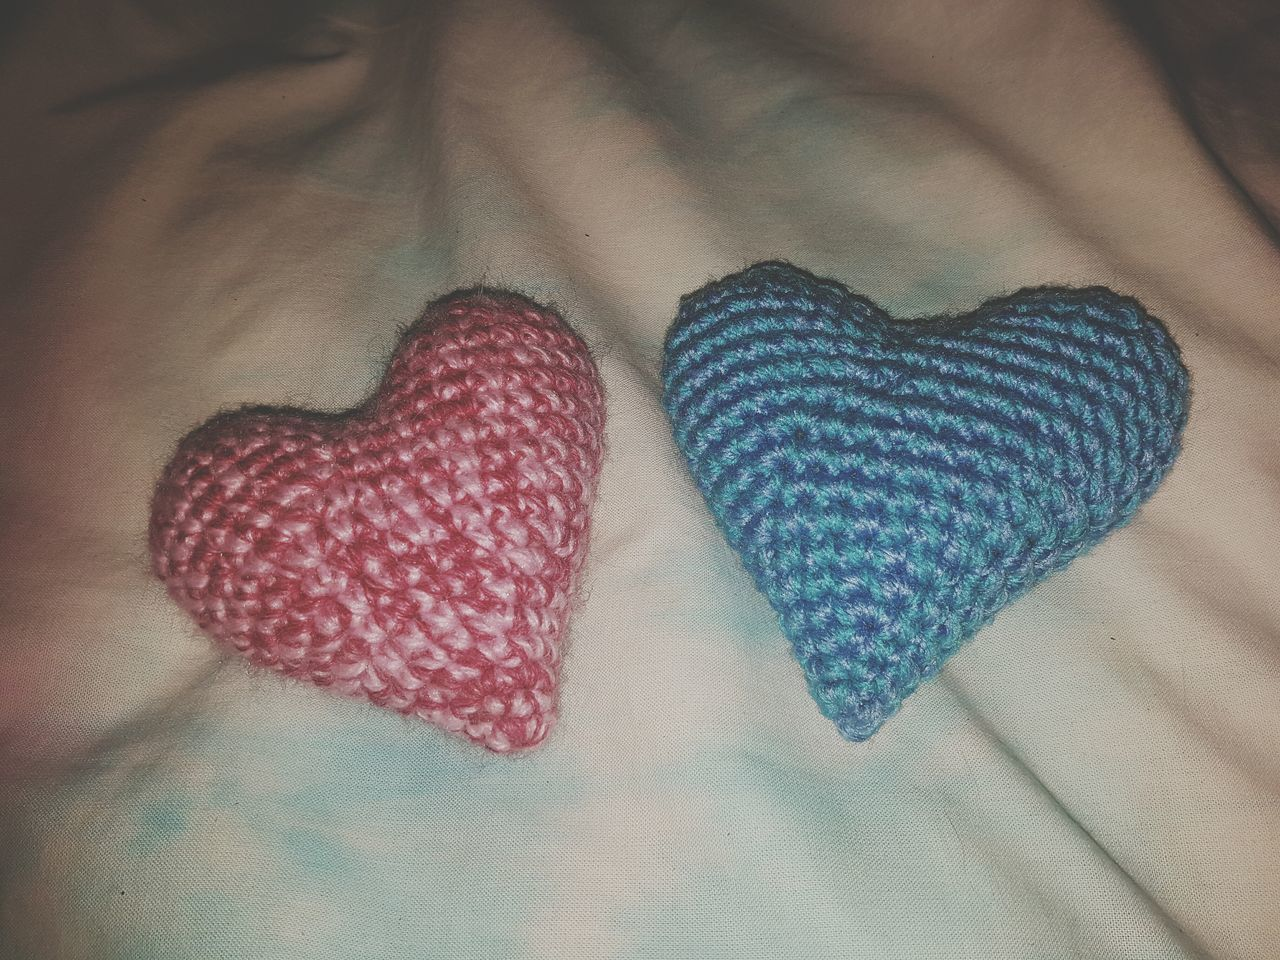 Heart Shape Close-up Multi Colored No People Indoors  Love Homemade Homemade With Love Crochet Hobbyphotography Art Is Everywhere Phone Photography First Eyeem Photo Pattern Craft Creating High Angle View